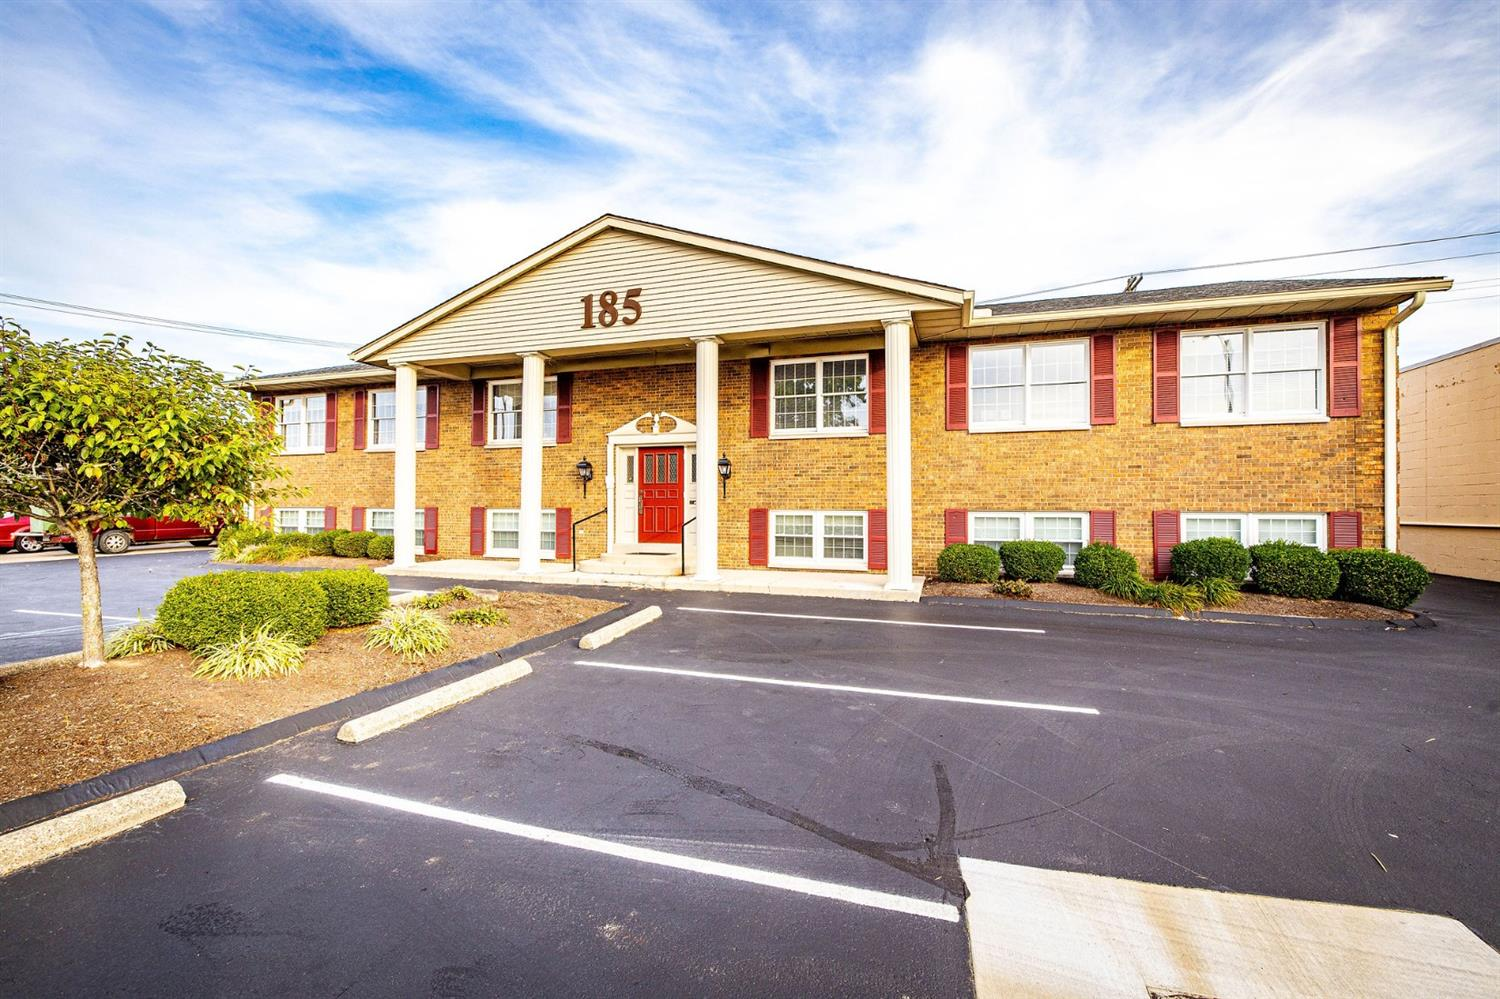 Fantastic four unit (condos) commercial building with ample parking.  6000 square feet of space. Money making opportunity for an investor who wants to rent out the four units. Each unit could be sold individually.